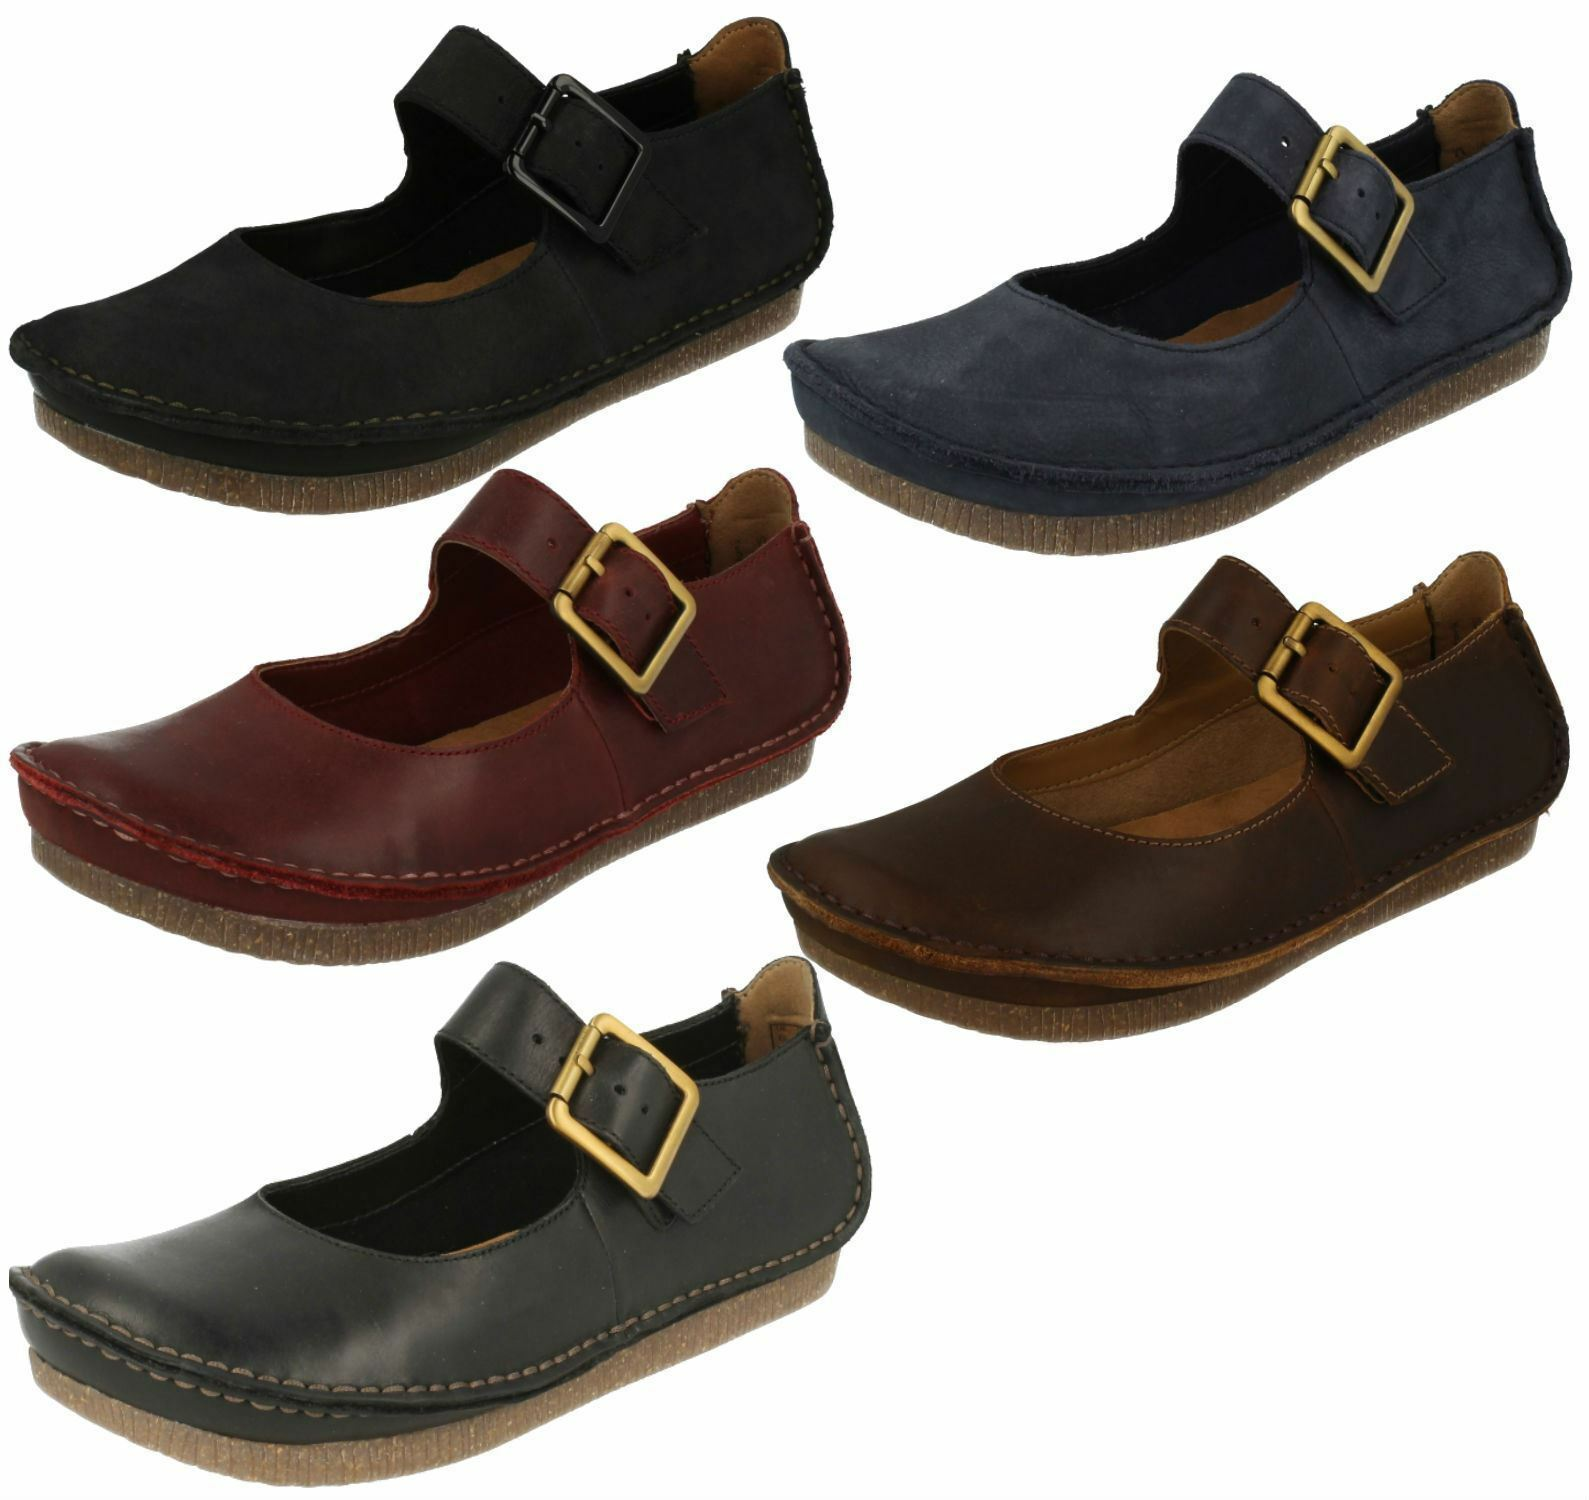 4ce7cc666ff49e mesdames mesdames mesdames clarks mary jane flats style janey juin |  Attrayant Et Durable a8d184